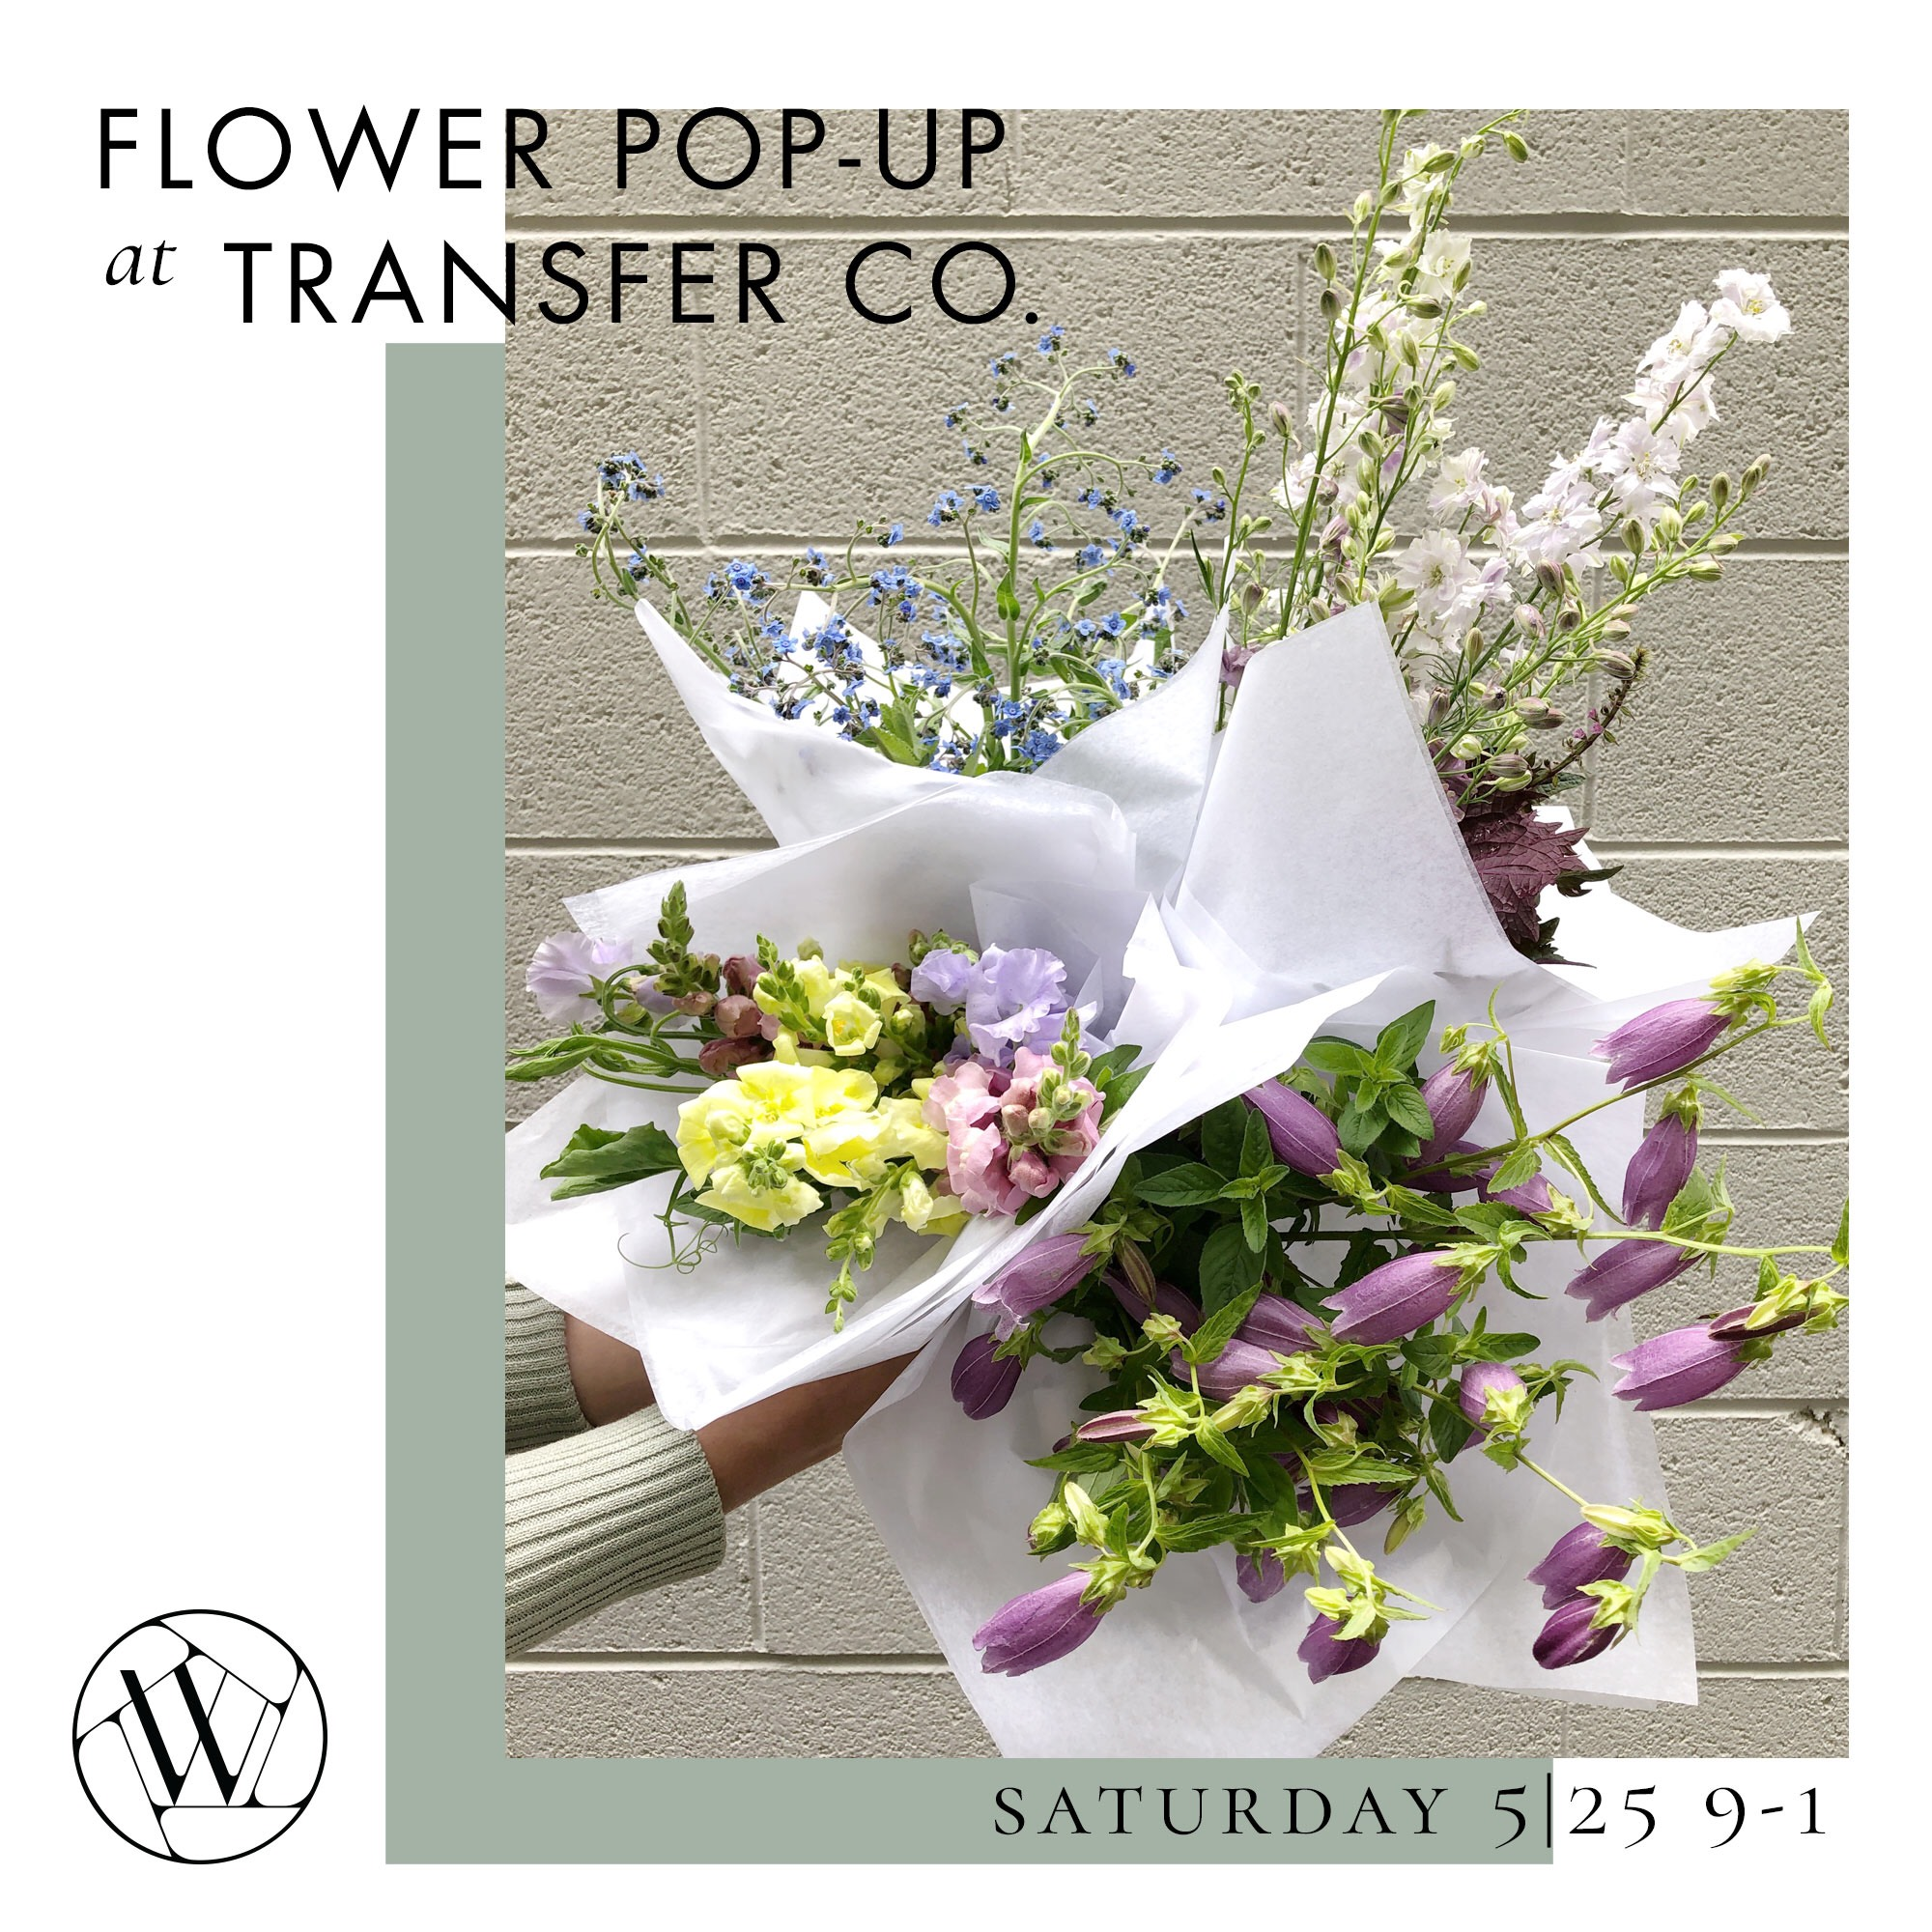 Wylde-TransferCo-Late-May-popup.jpg